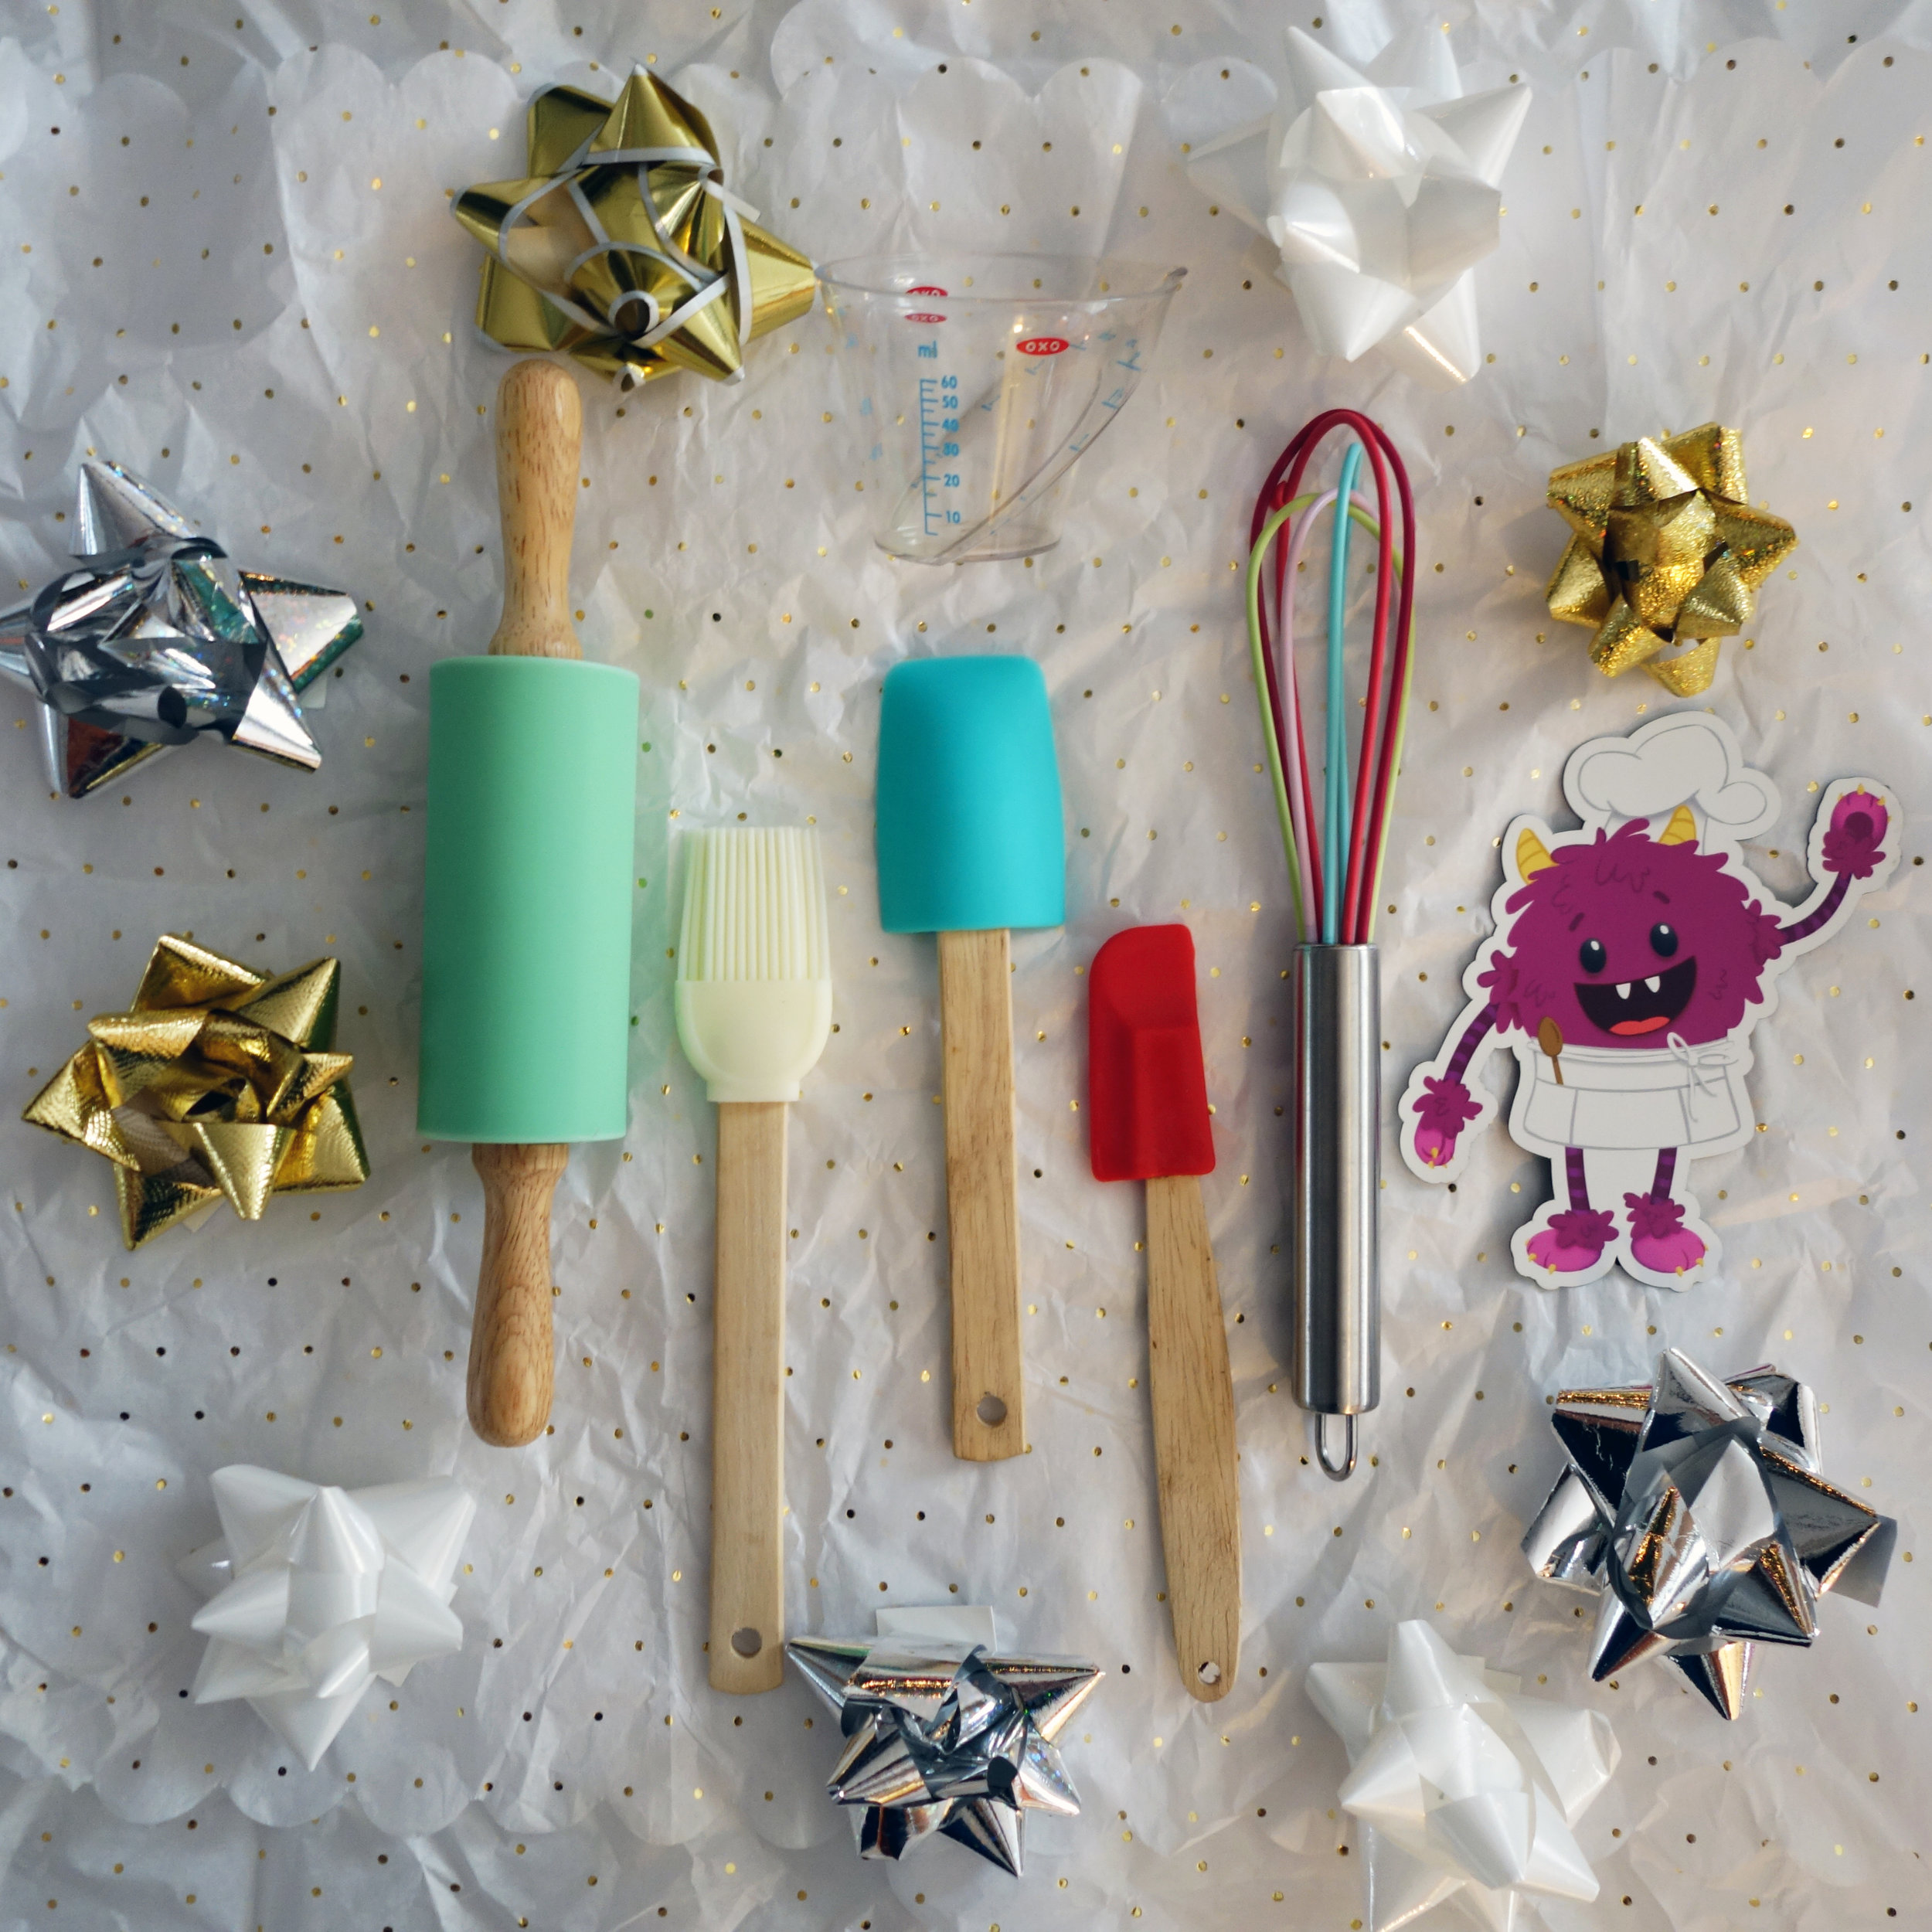 Gift guide for kids who like to cook - Tiny Kitchen Tools for Kid Chefs